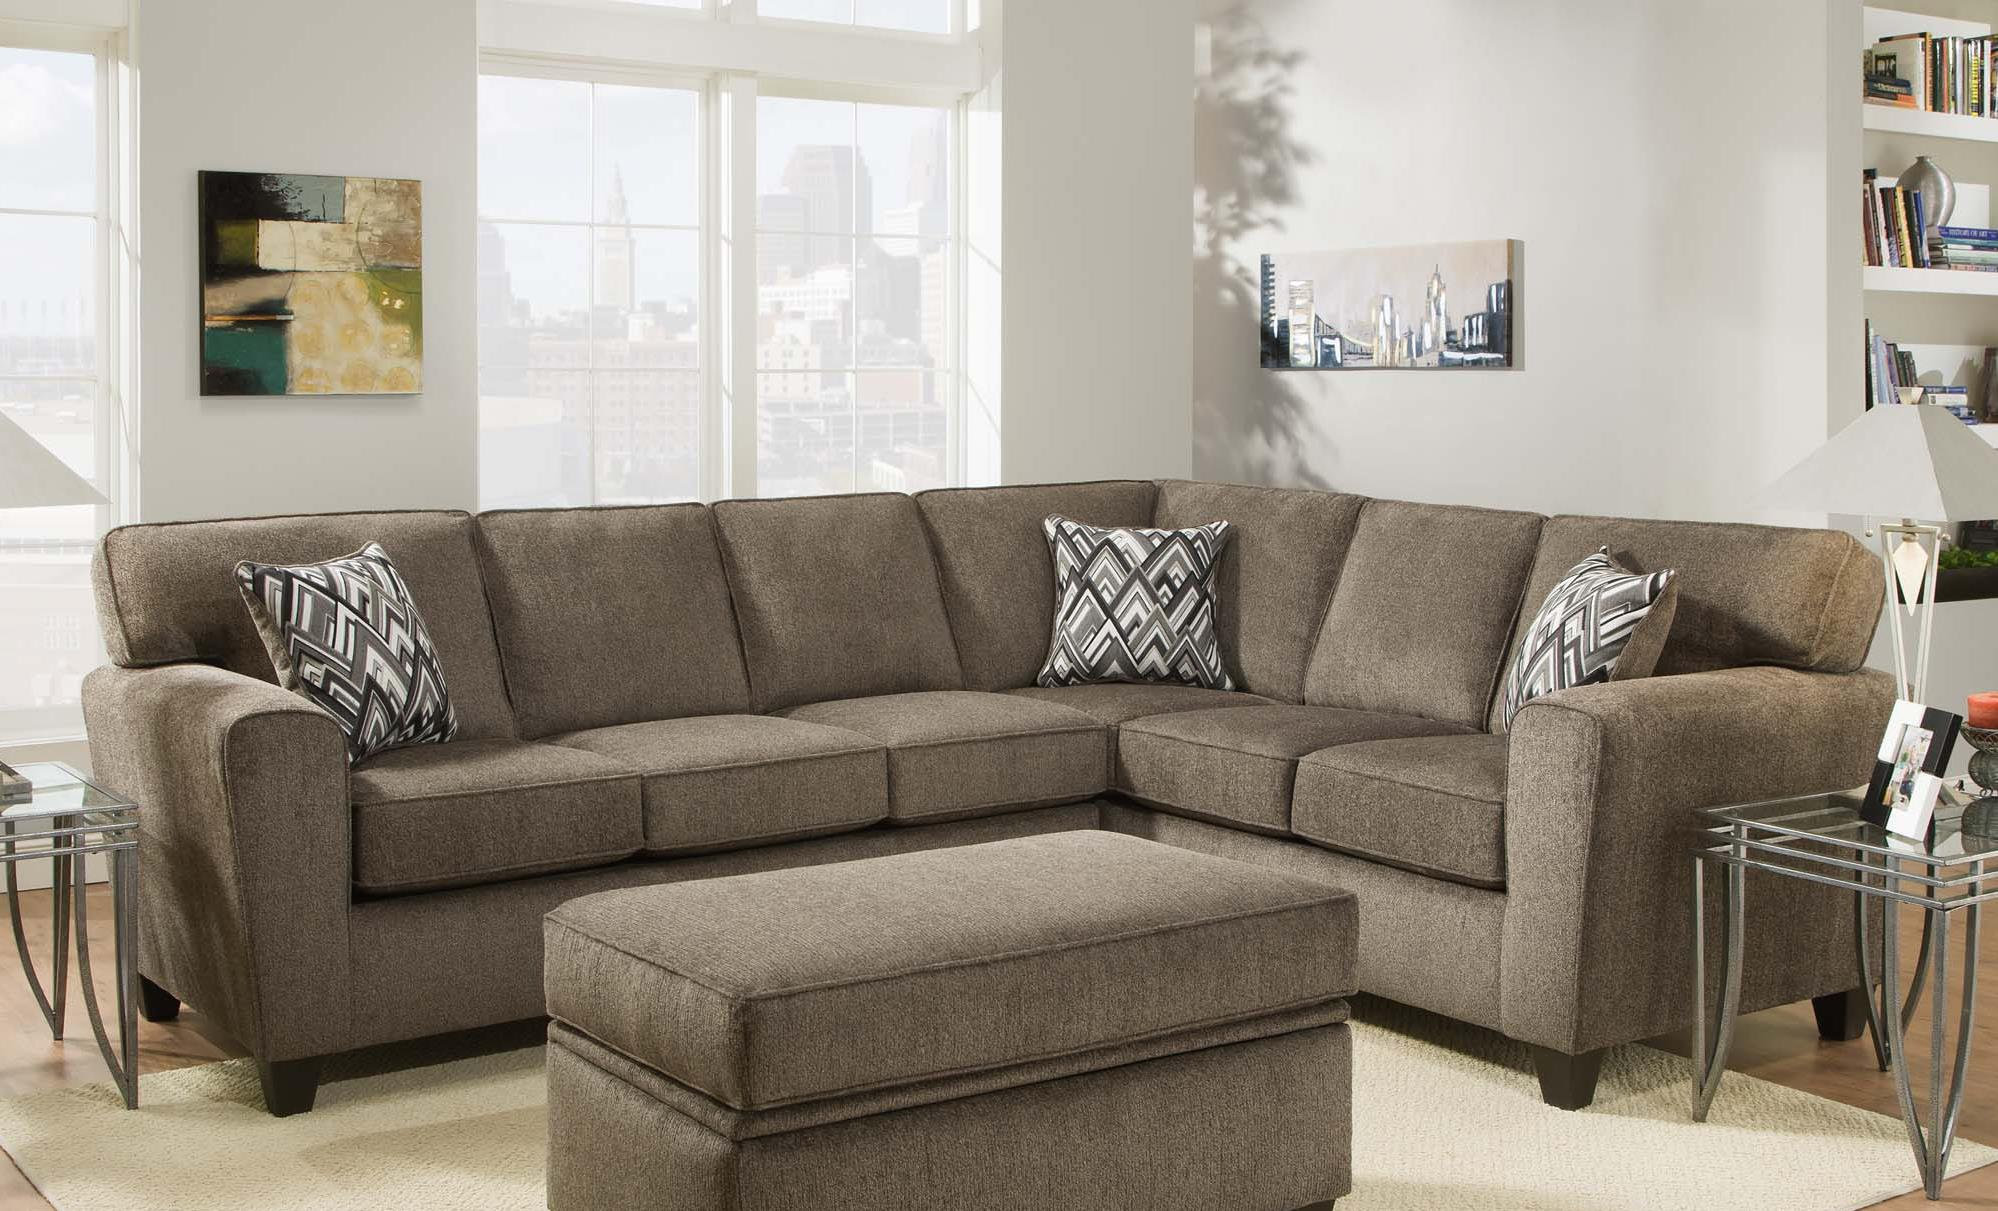 Charming Sectional Sofa (Seats 5)   3100 By American Furniture   Wilcox Furniture    Sofa Sectional Corpus Christi, Kingsville, Calallen, Texas